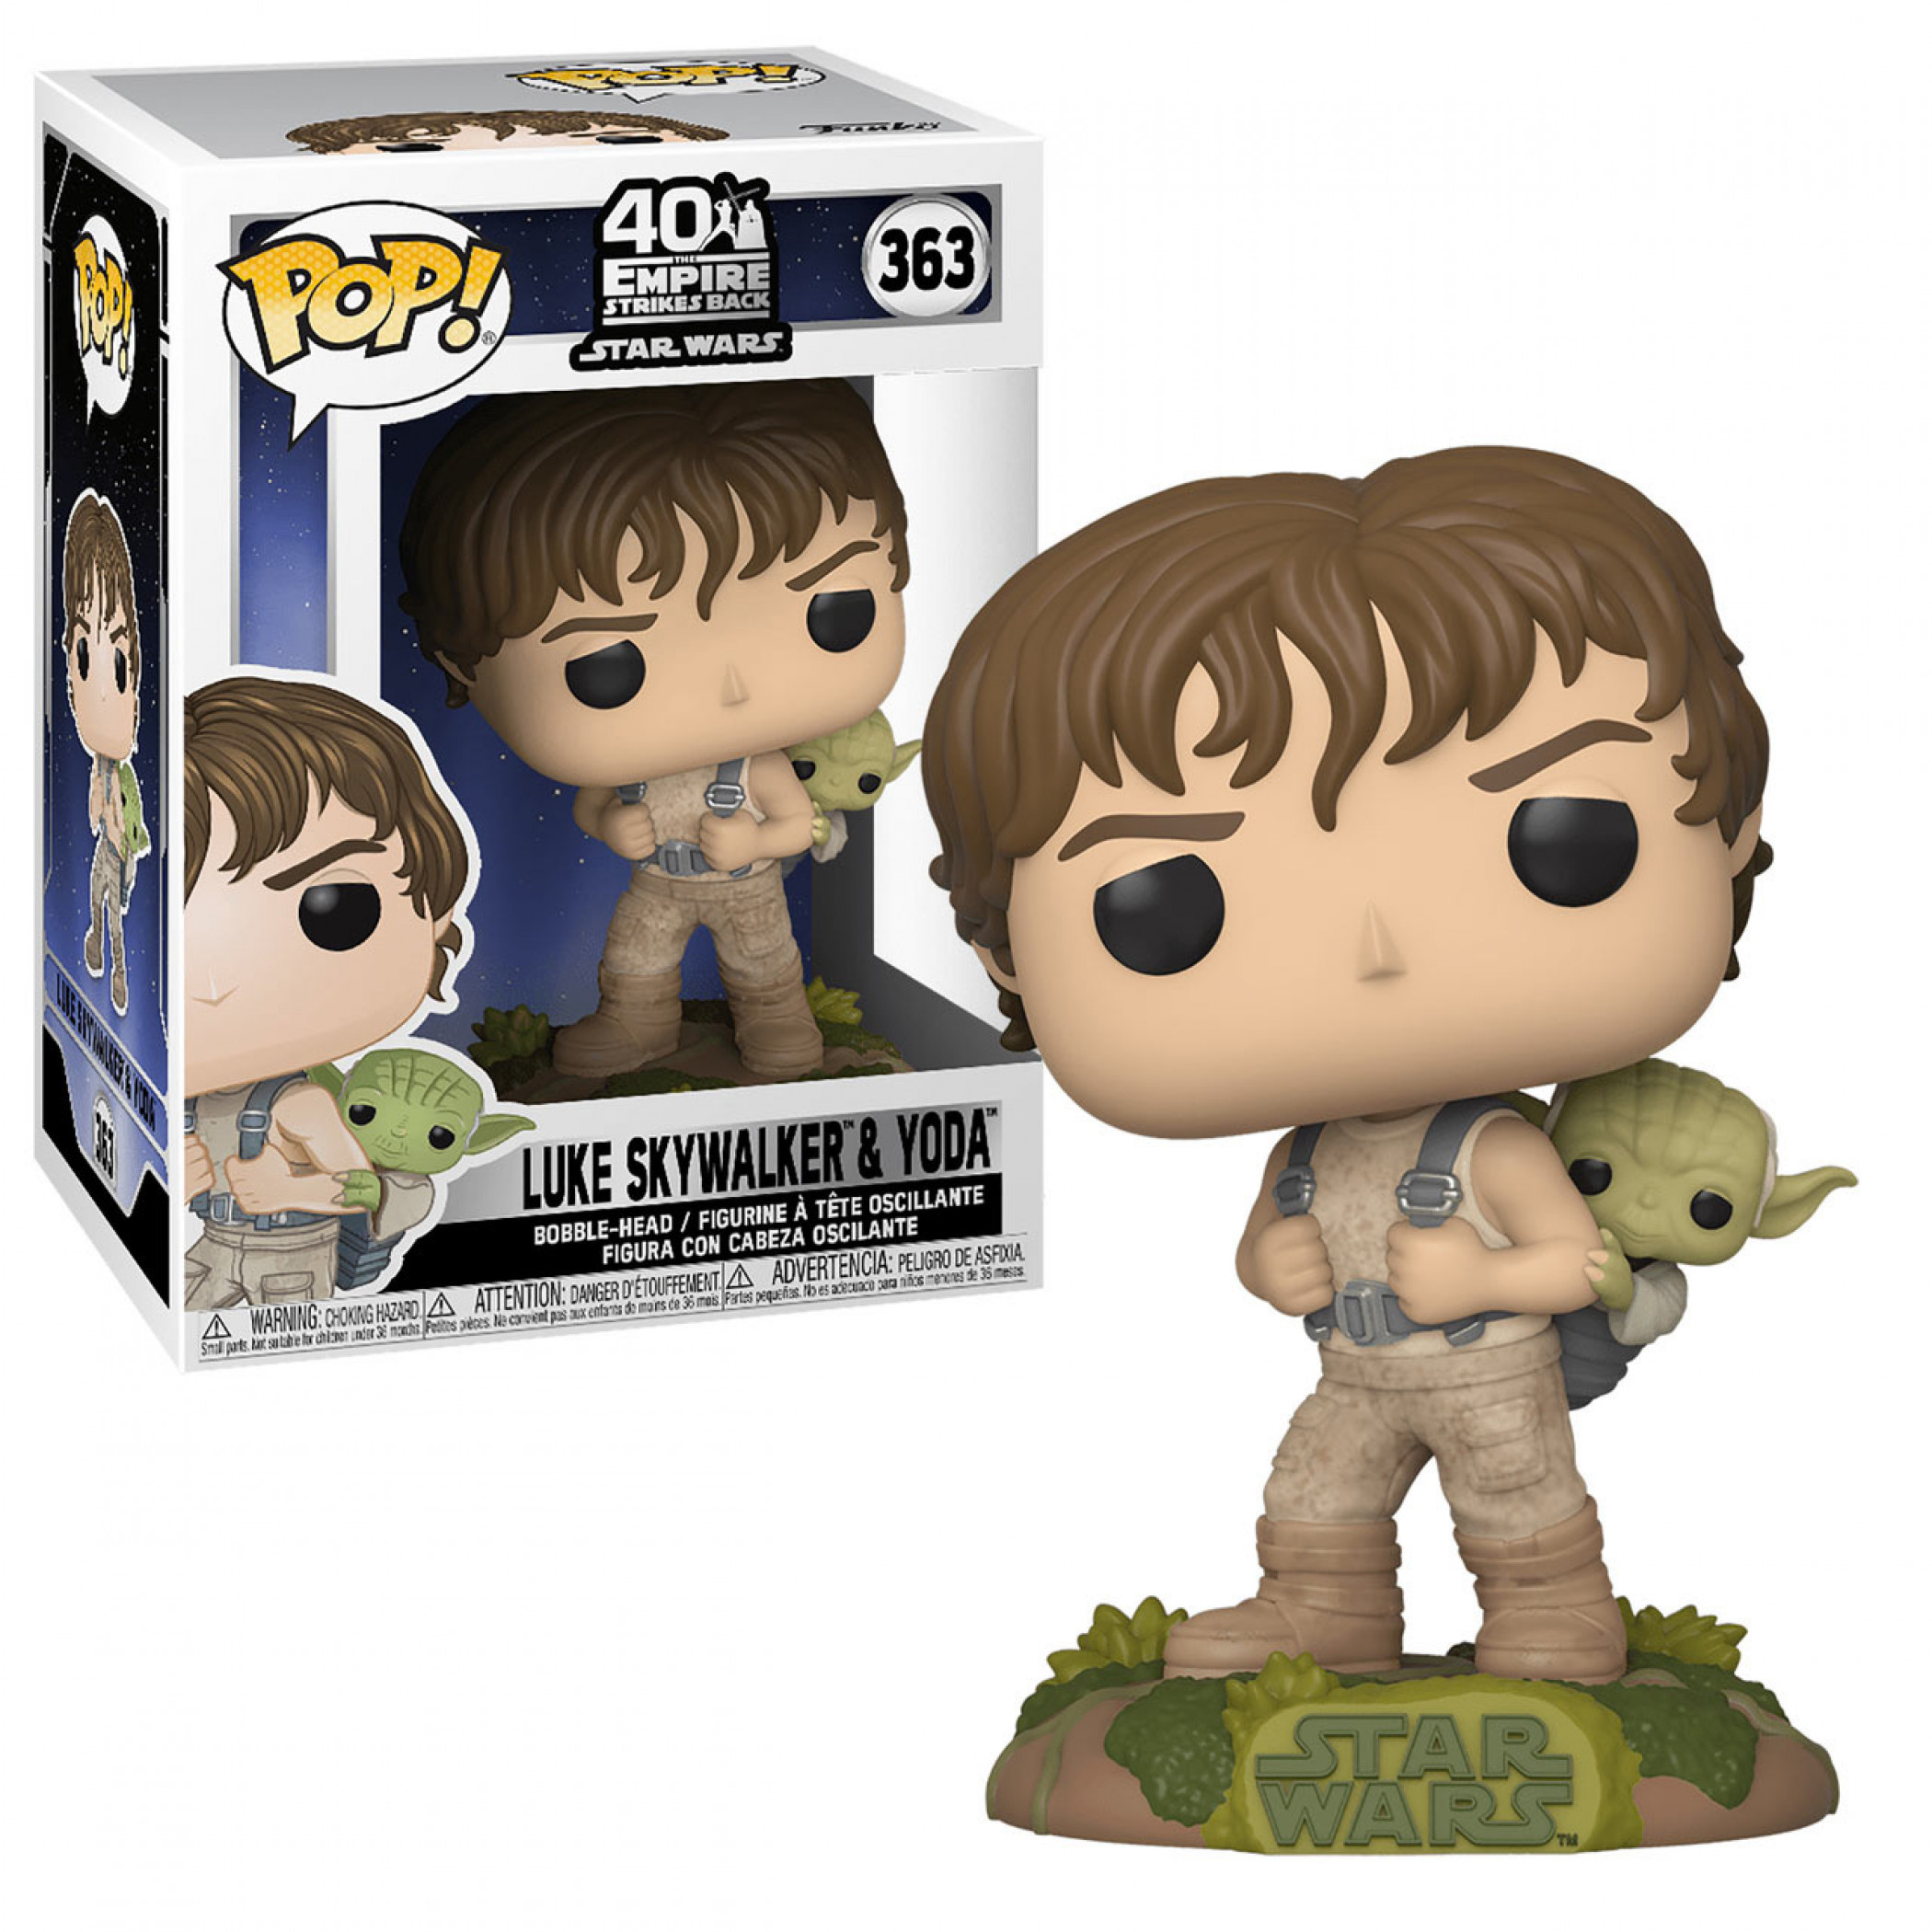 Star Wars - Training Luke with Yoda Funko Pop! Figure